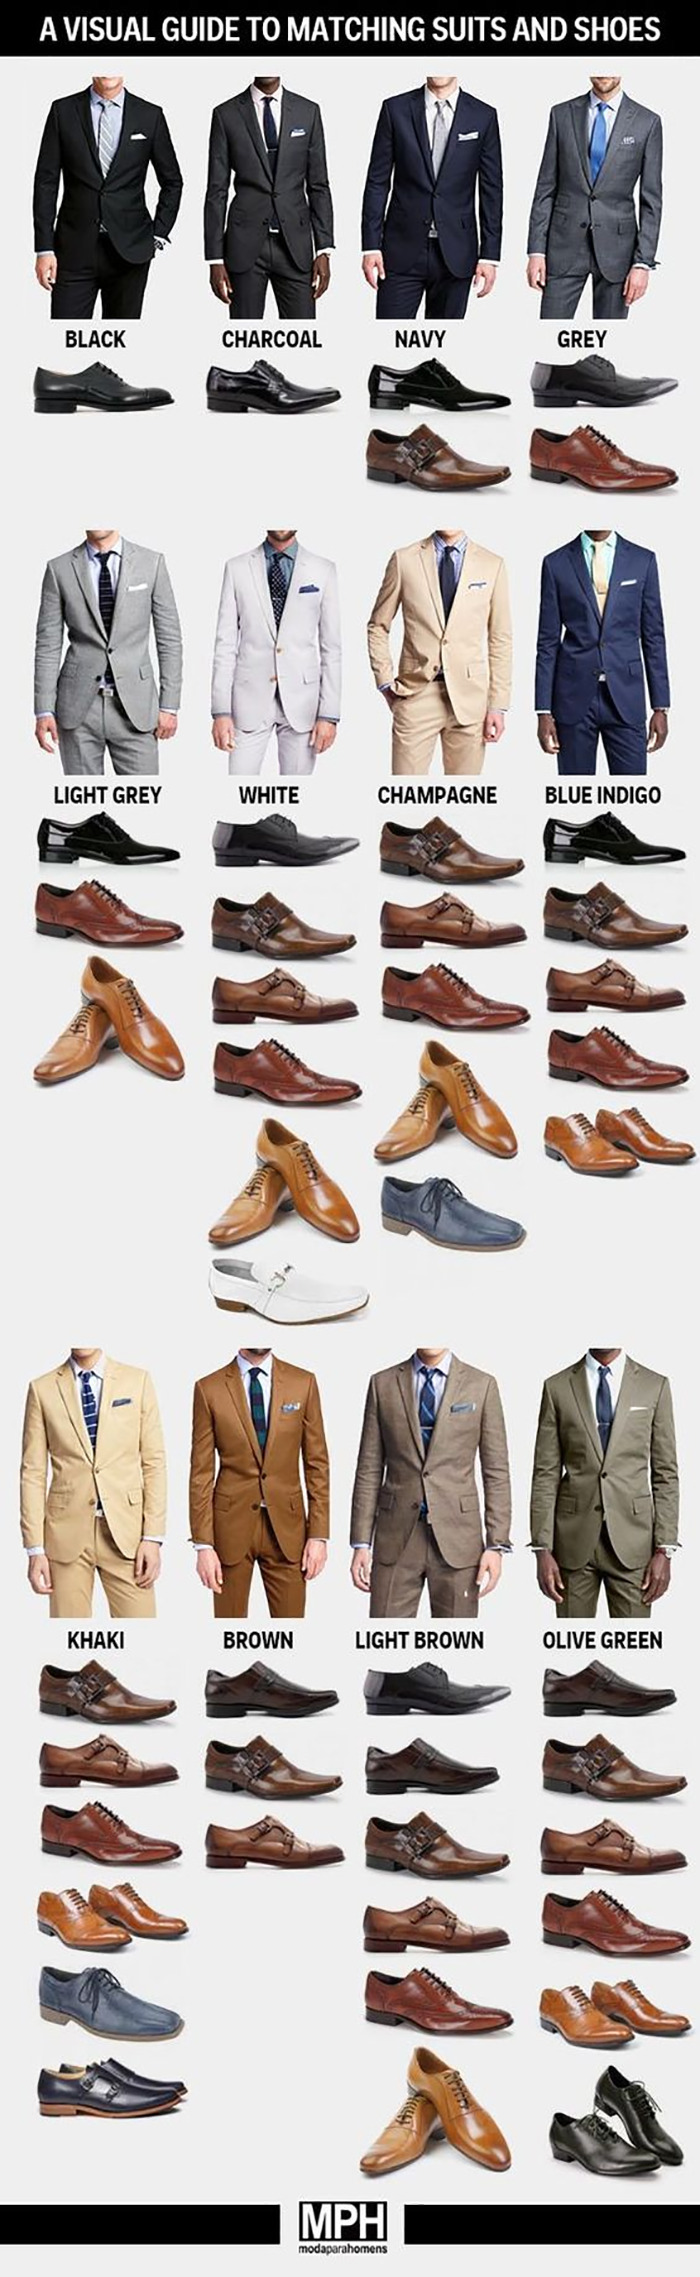 What Suits And Shoes Go Together